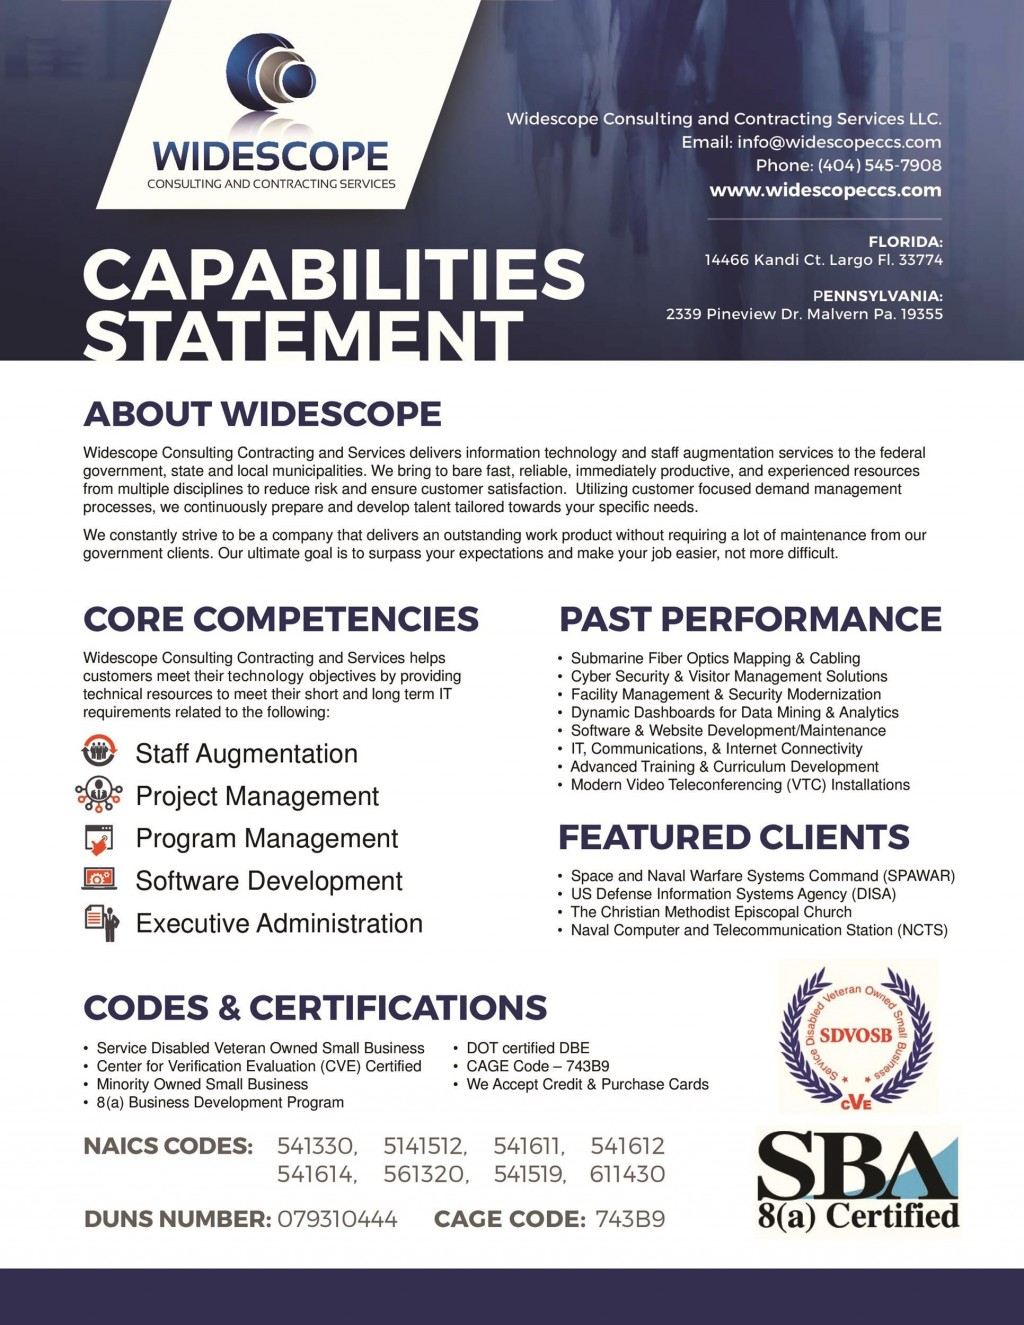 008 Astounding Capability Statement Template Word Doc Photo  Document FreeLarge